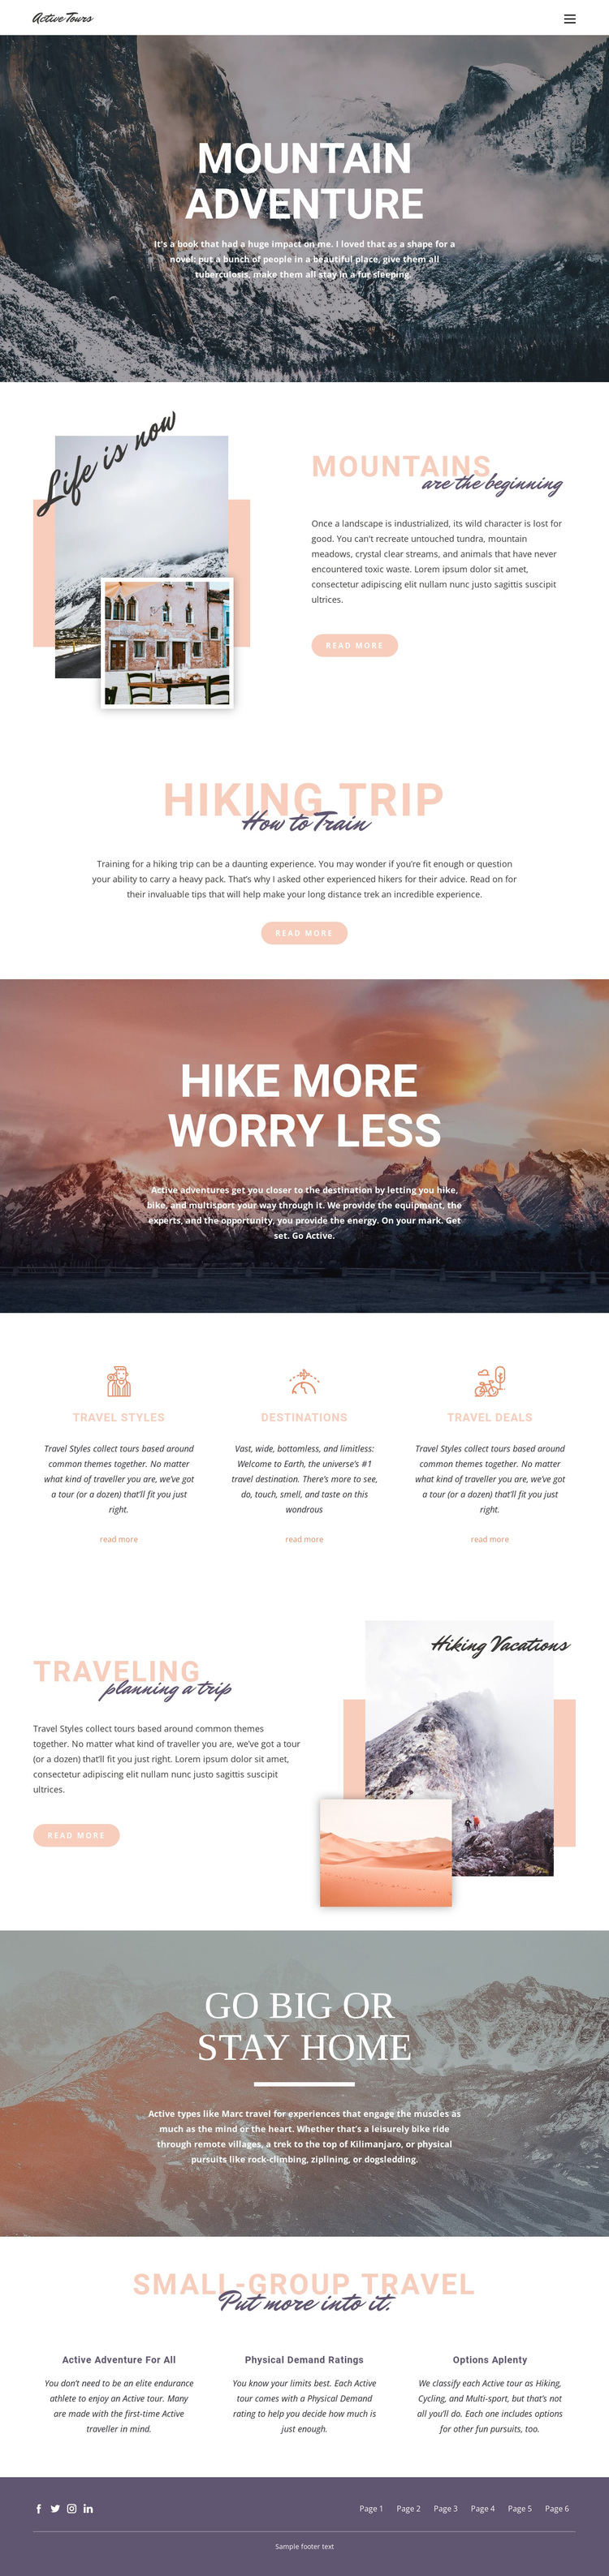 Guided backpacking trips Joomla Page Builder